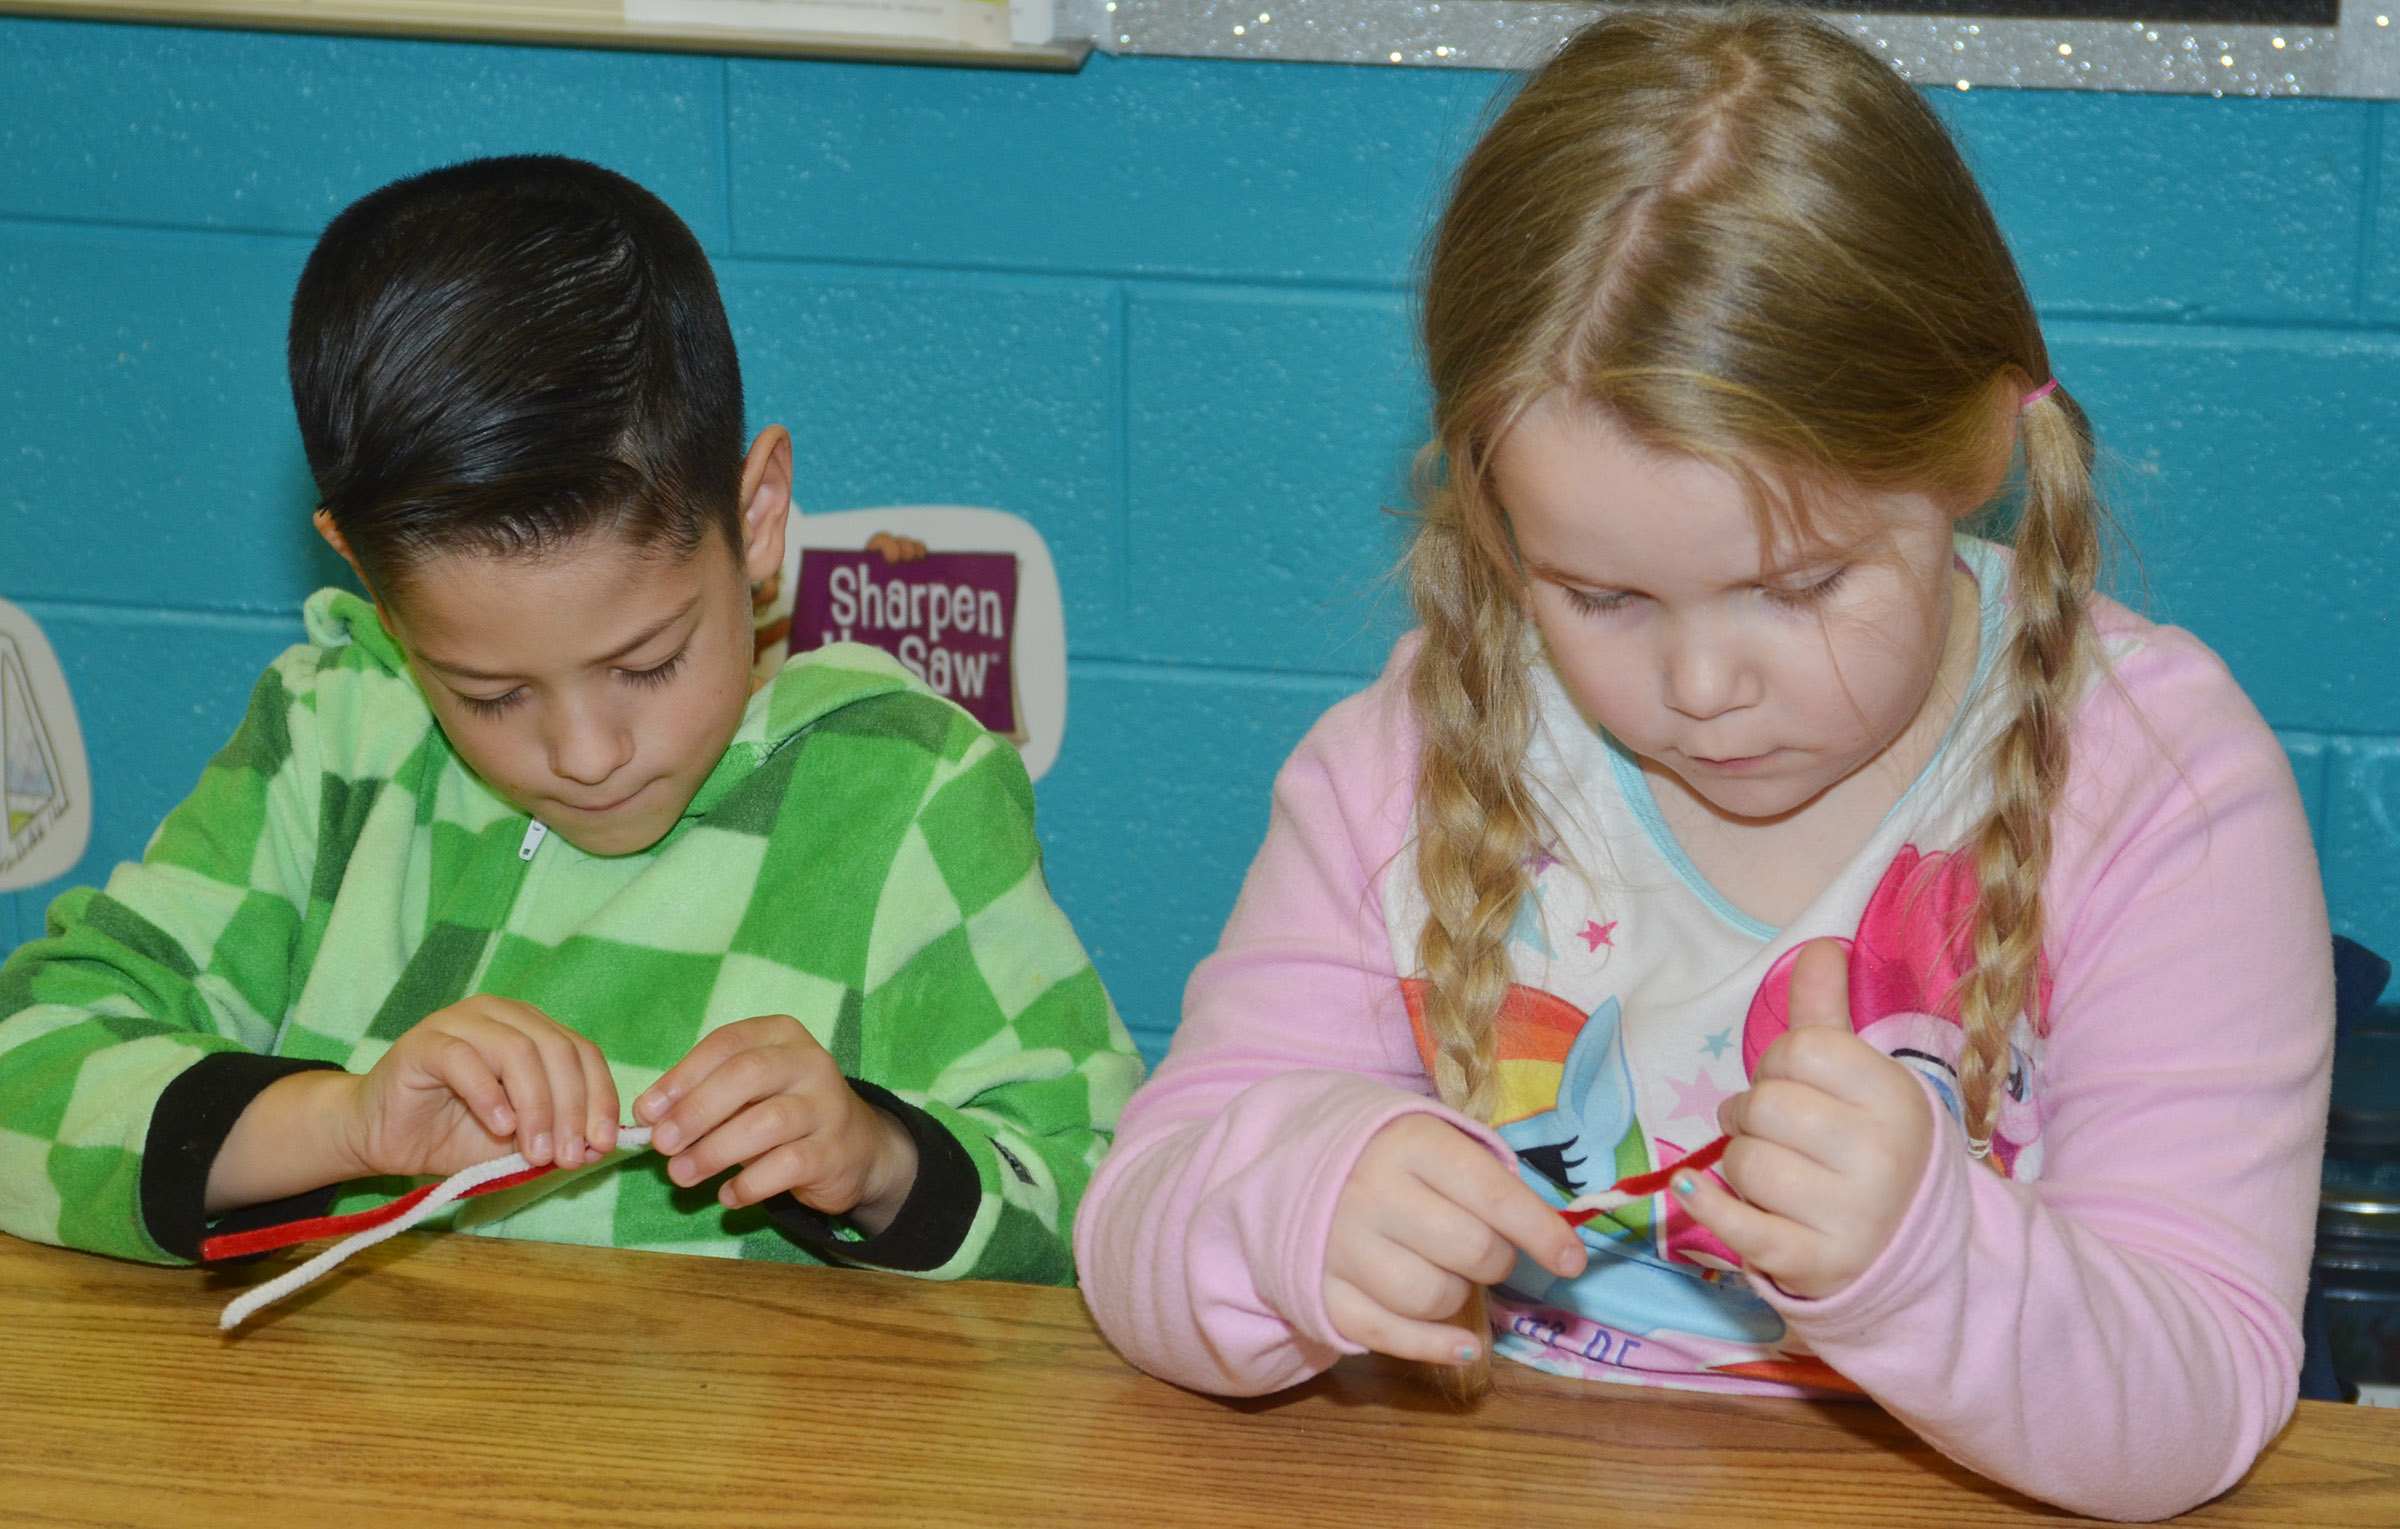 CES second-graders Abram Adkins, at left, and Cera Rooker make their candy cane ornaments.